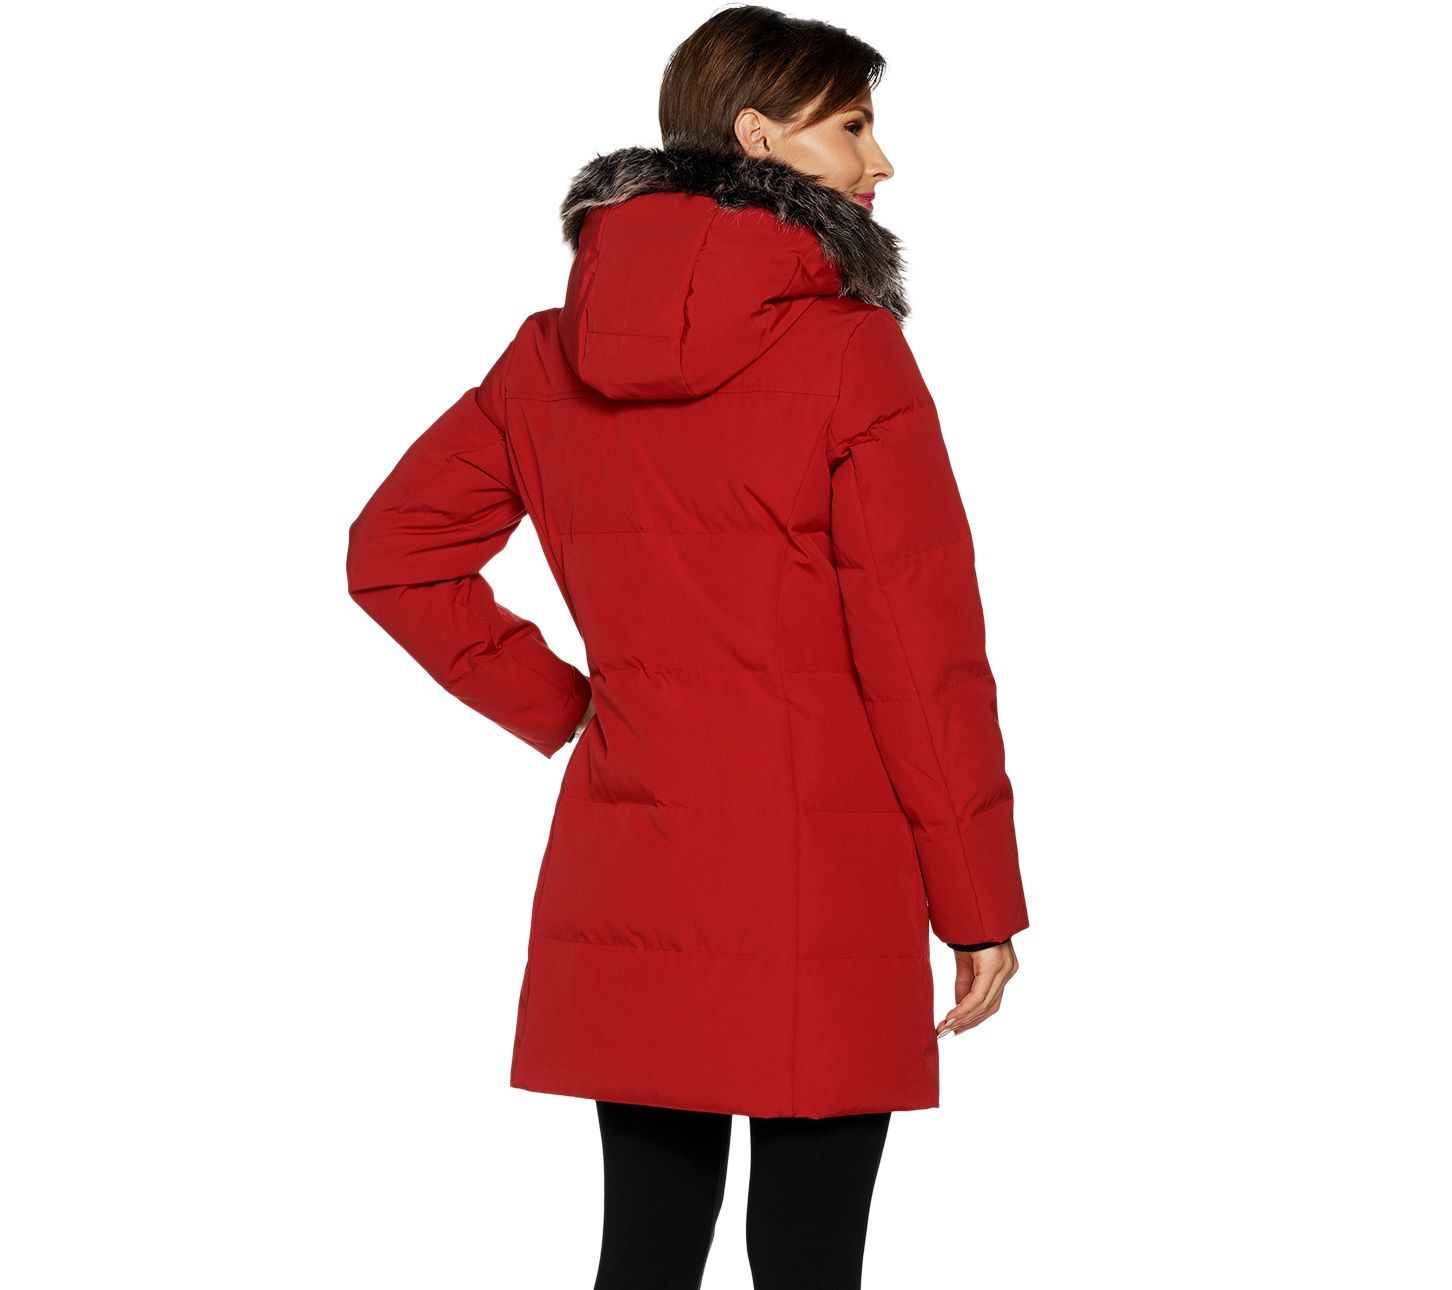 da6f2a4d5a Arctic Expedition Women s Quilted Down Coat - Page 1 — QVC.com